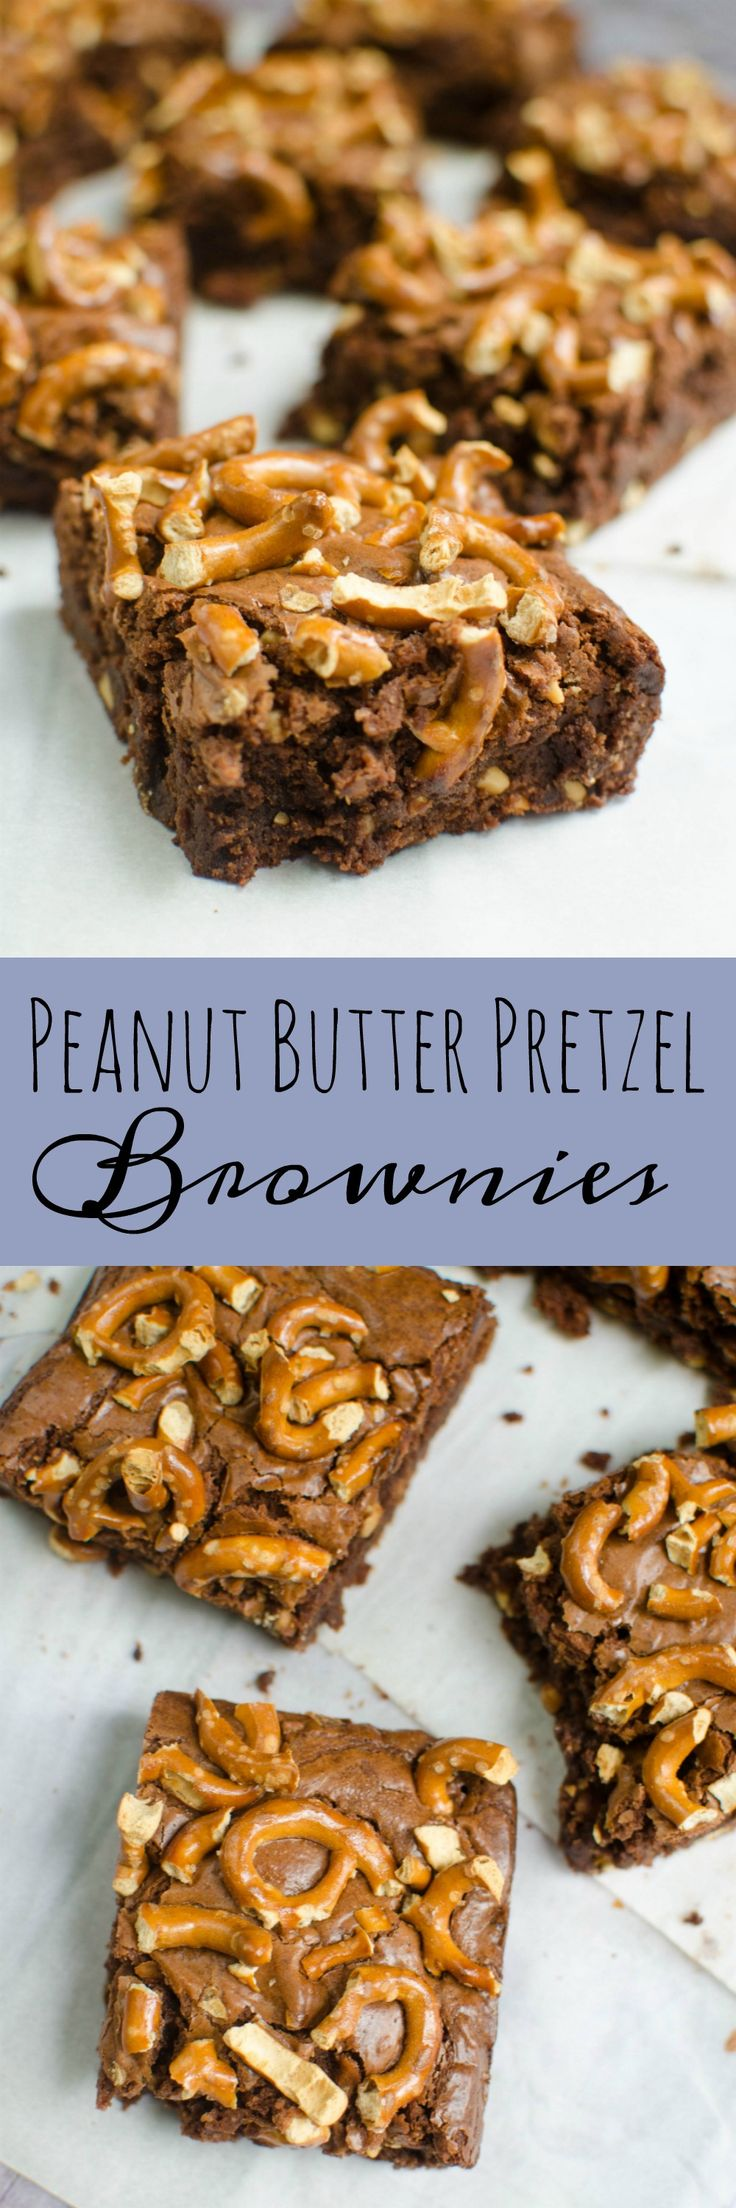 Peanut Butter Pretzel Brownies - the perfect recipe for sweet and salty brownies!